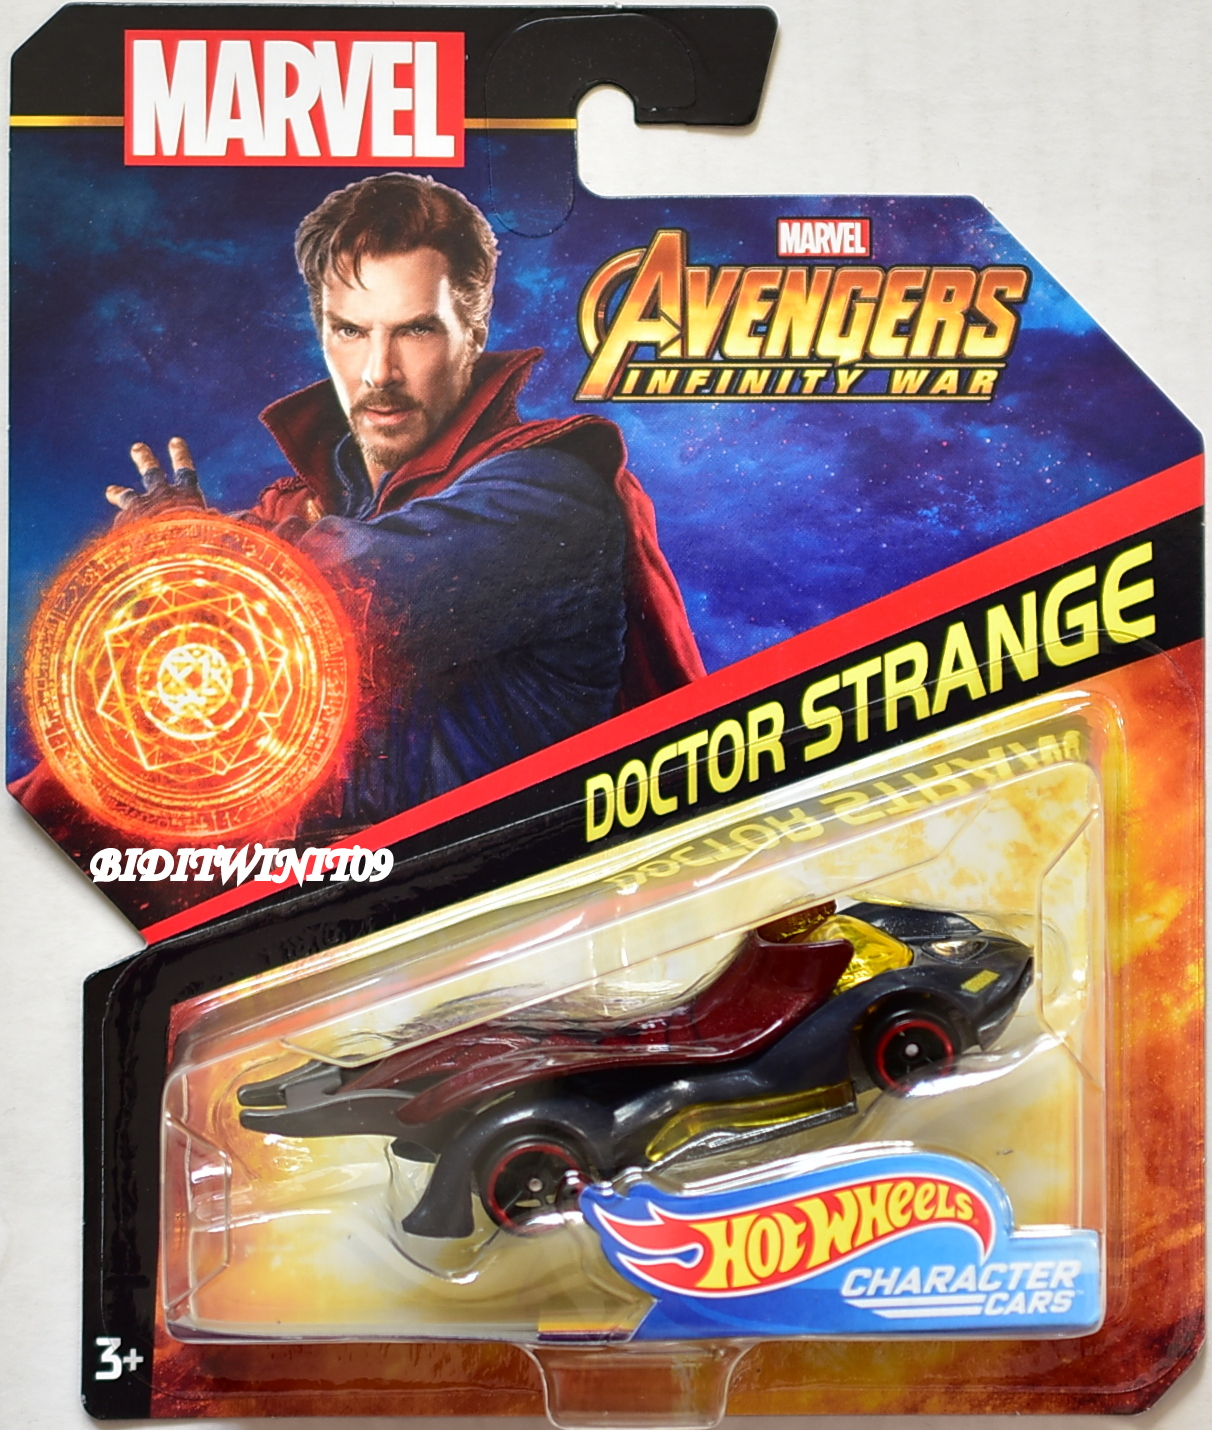 HOT WHEELS MARVEL AVANGERS INFINITY WAR DOCTOR STRANGE CHARACTER CARS